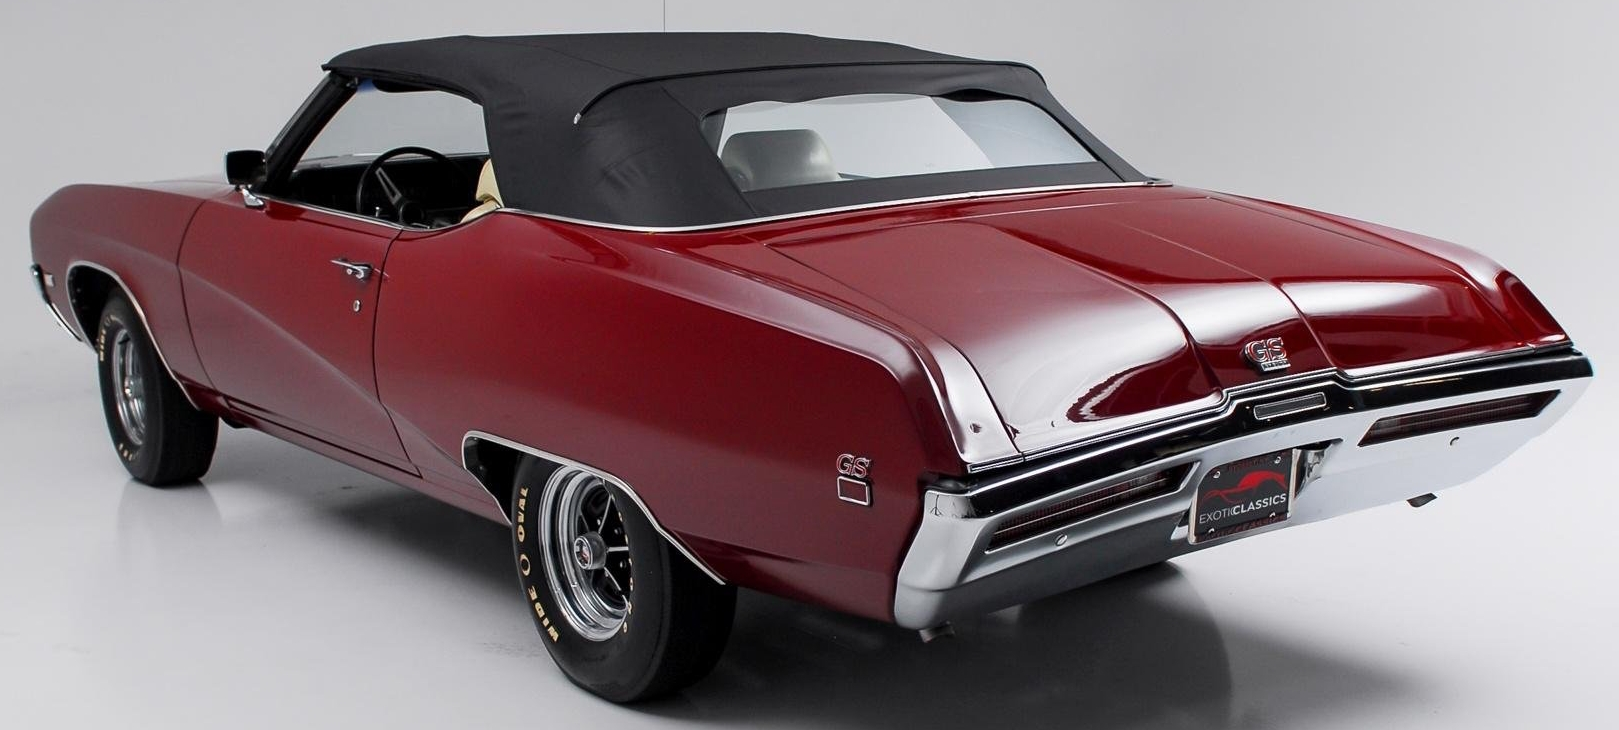 1968-1969 Buick GS 400 - Mediocrity No More - Old Car Memories